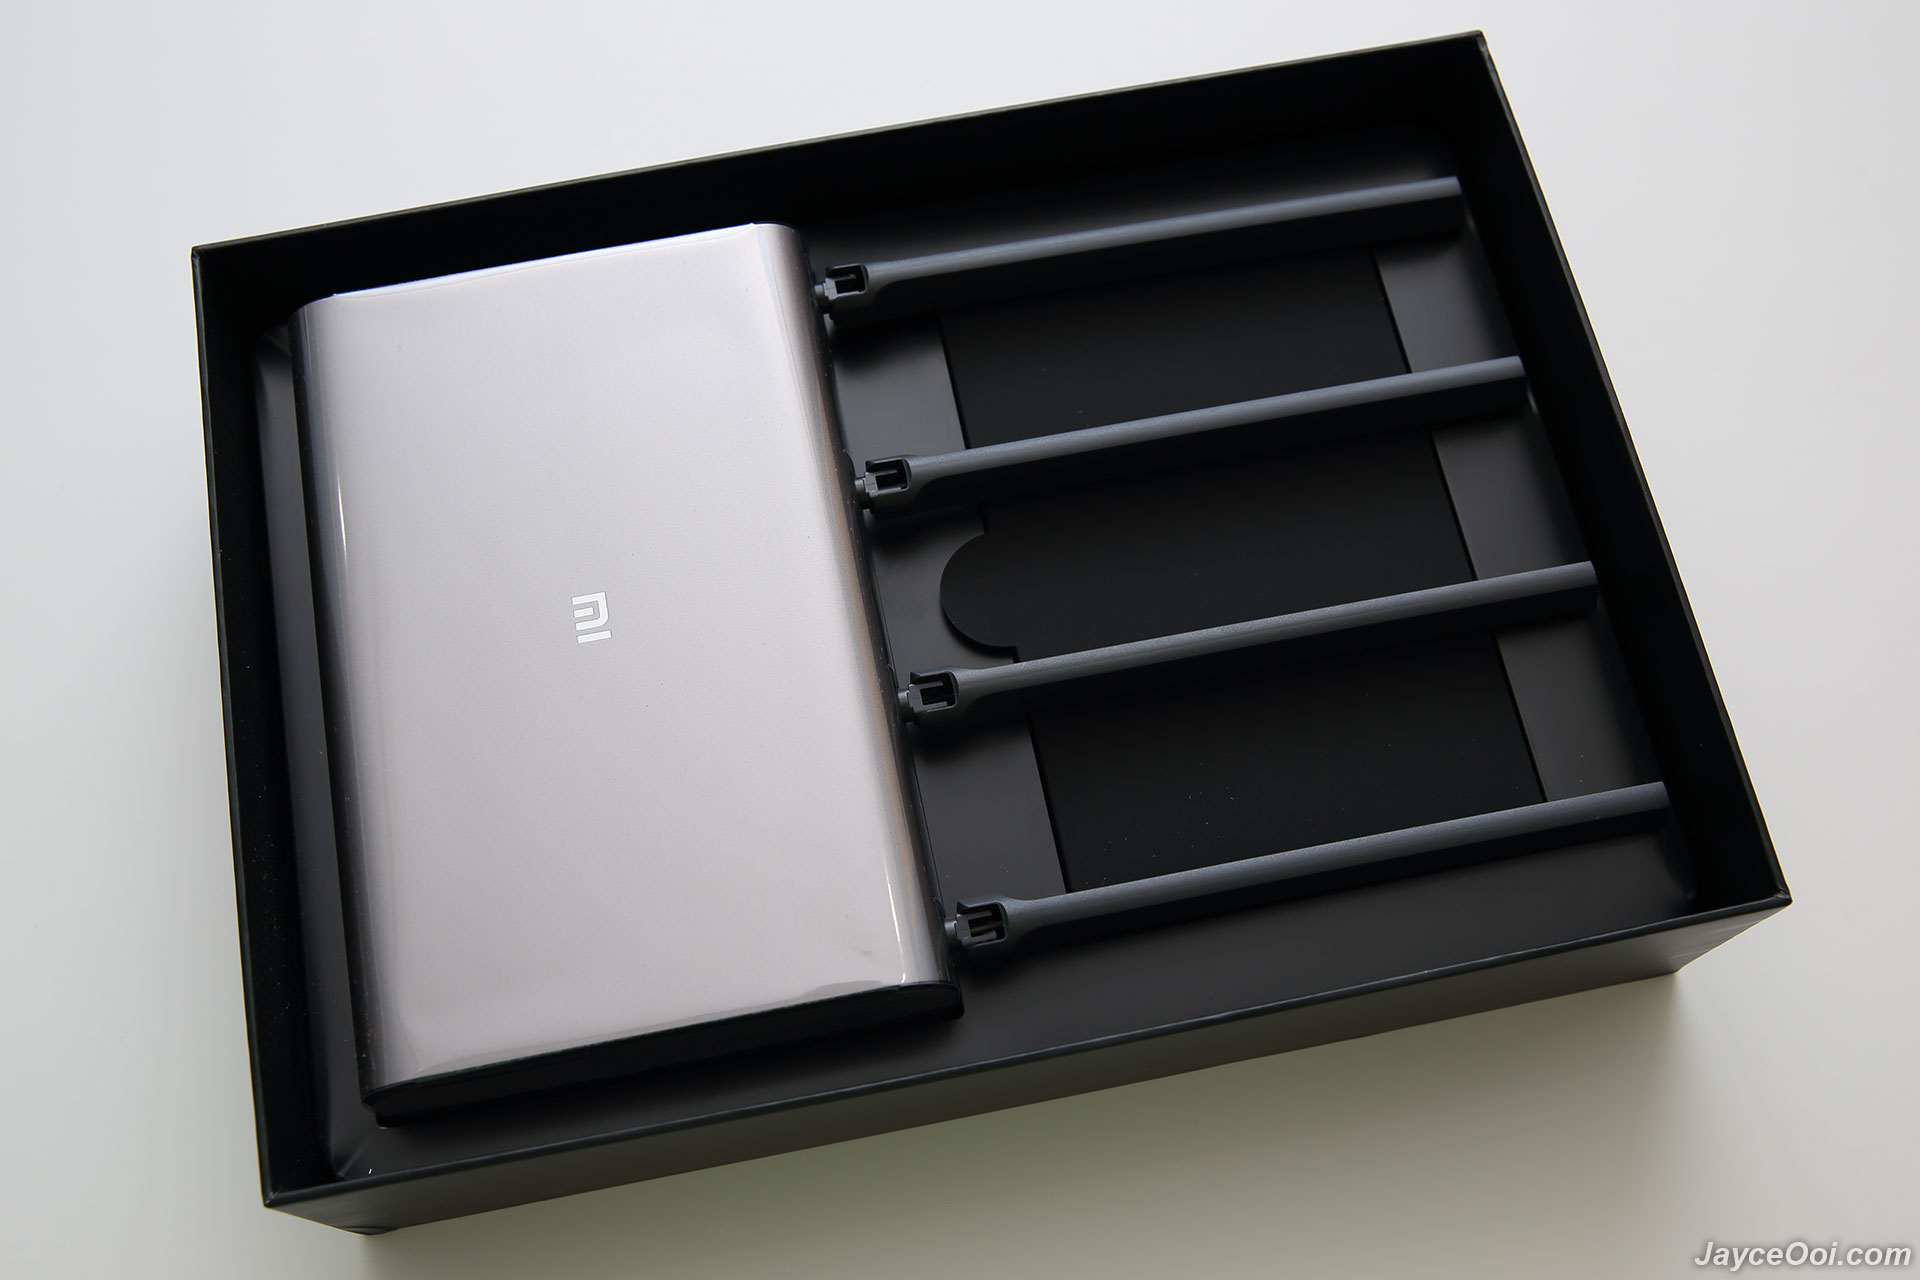 Xiaomi Wireless Router Pro Review - JayceOoi com